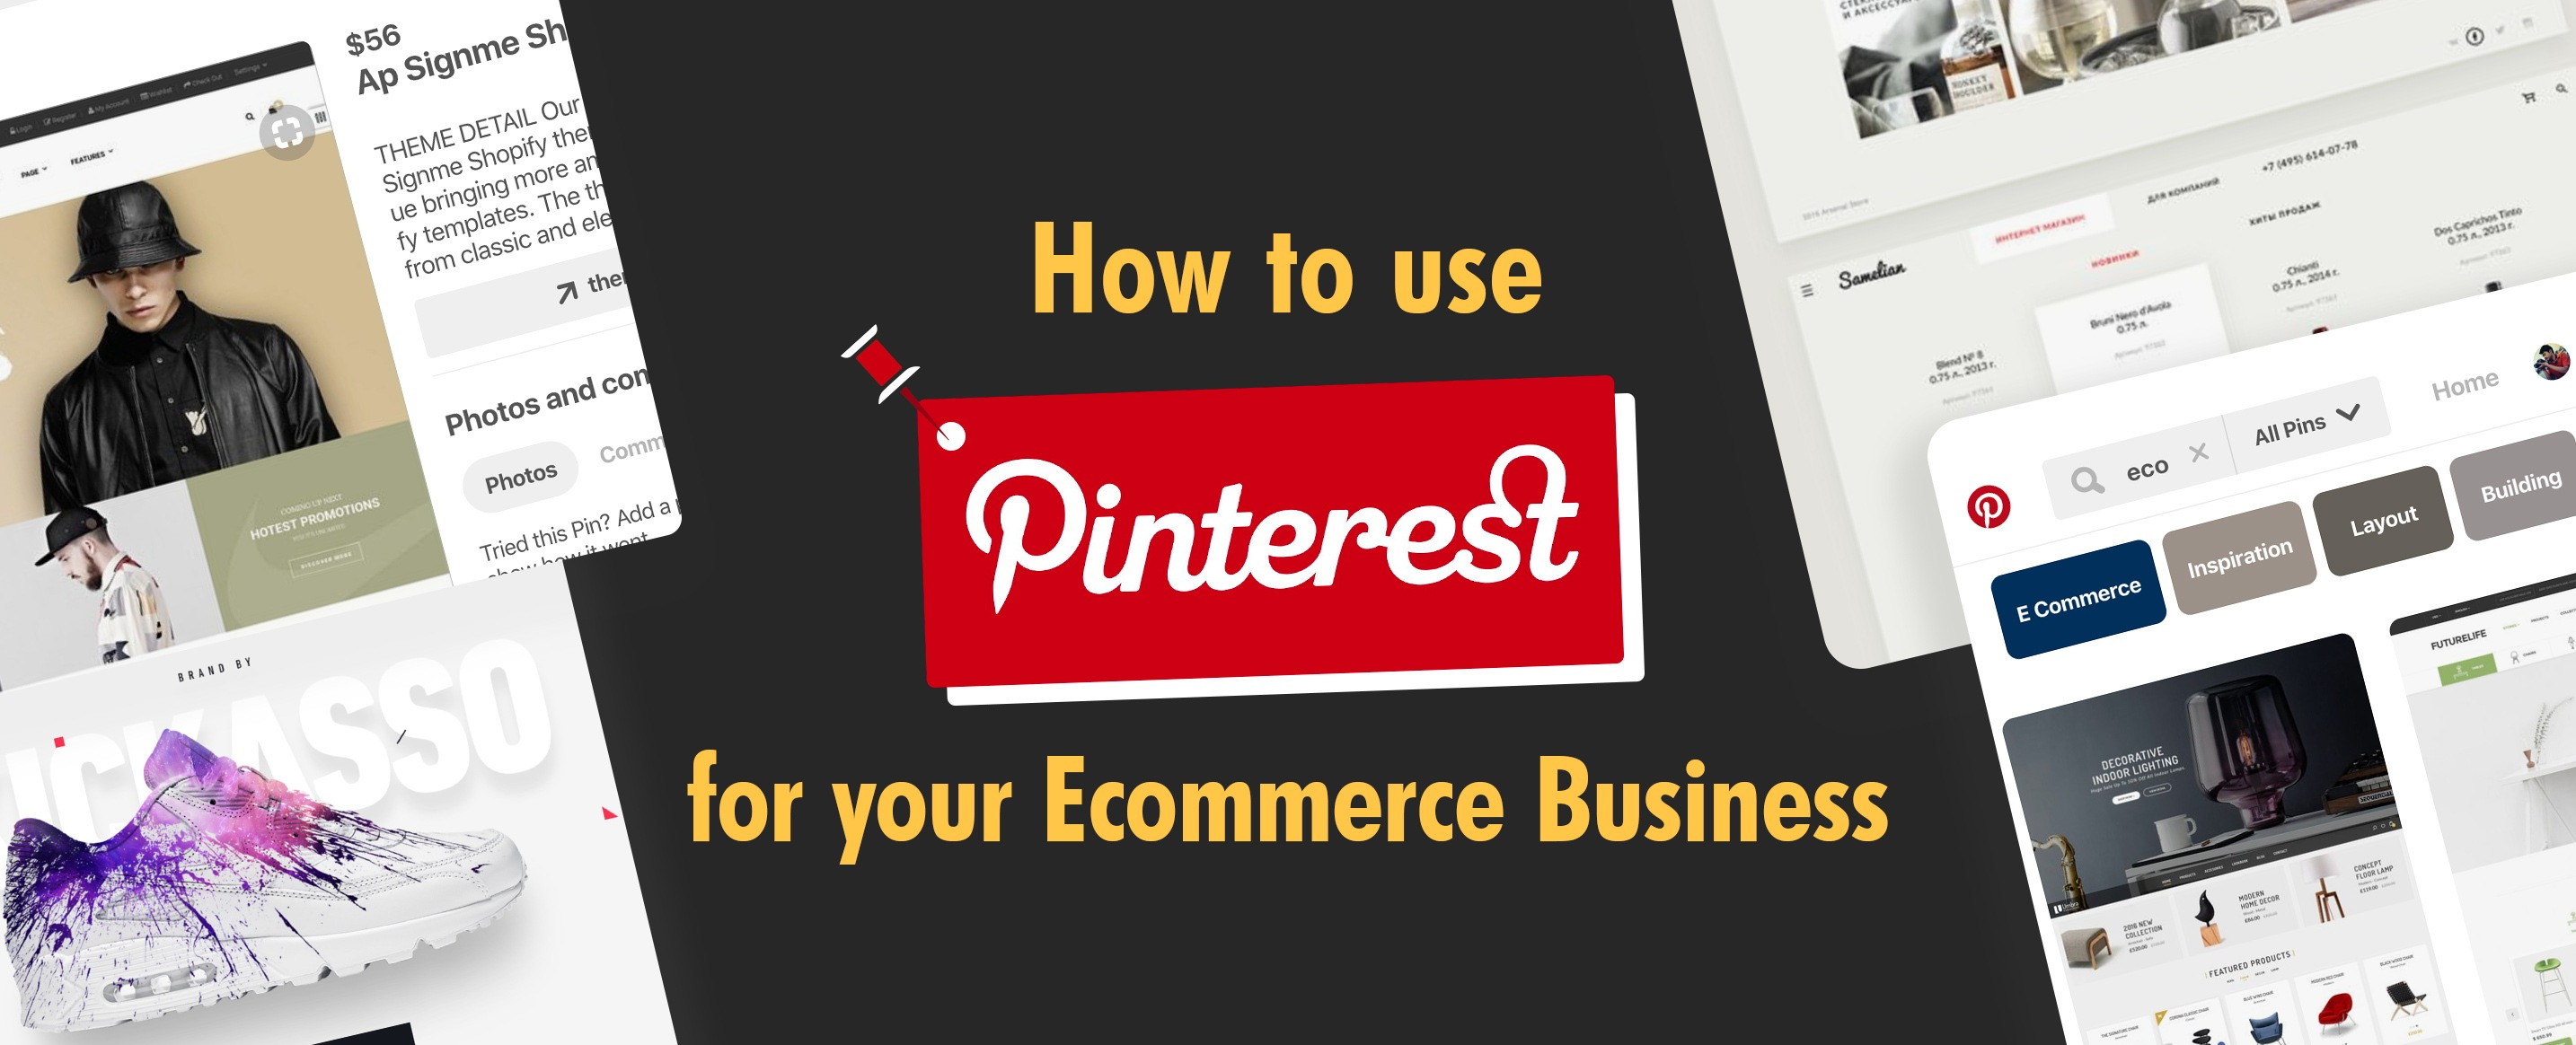 How To Use Pinterest For Your Ecommerce Business